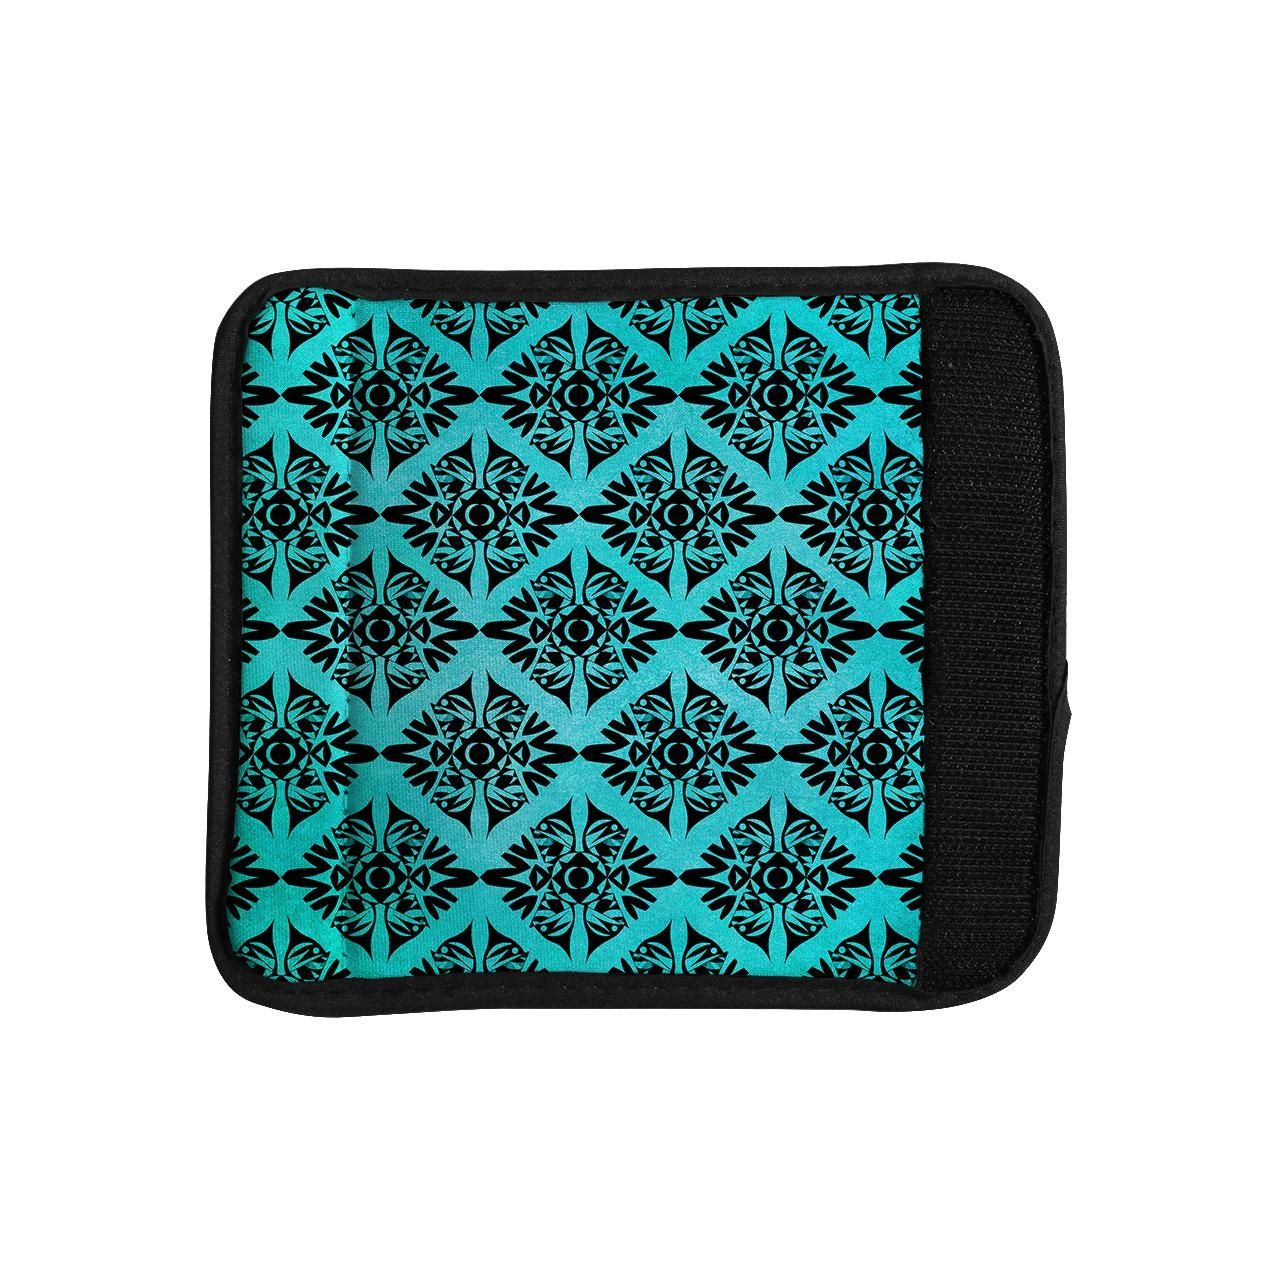 KESS InHouse Pom Graphic Design 'Eye Symmetry Pattern' Luggage Handle Wrap - Brought to you by Avarsha.com